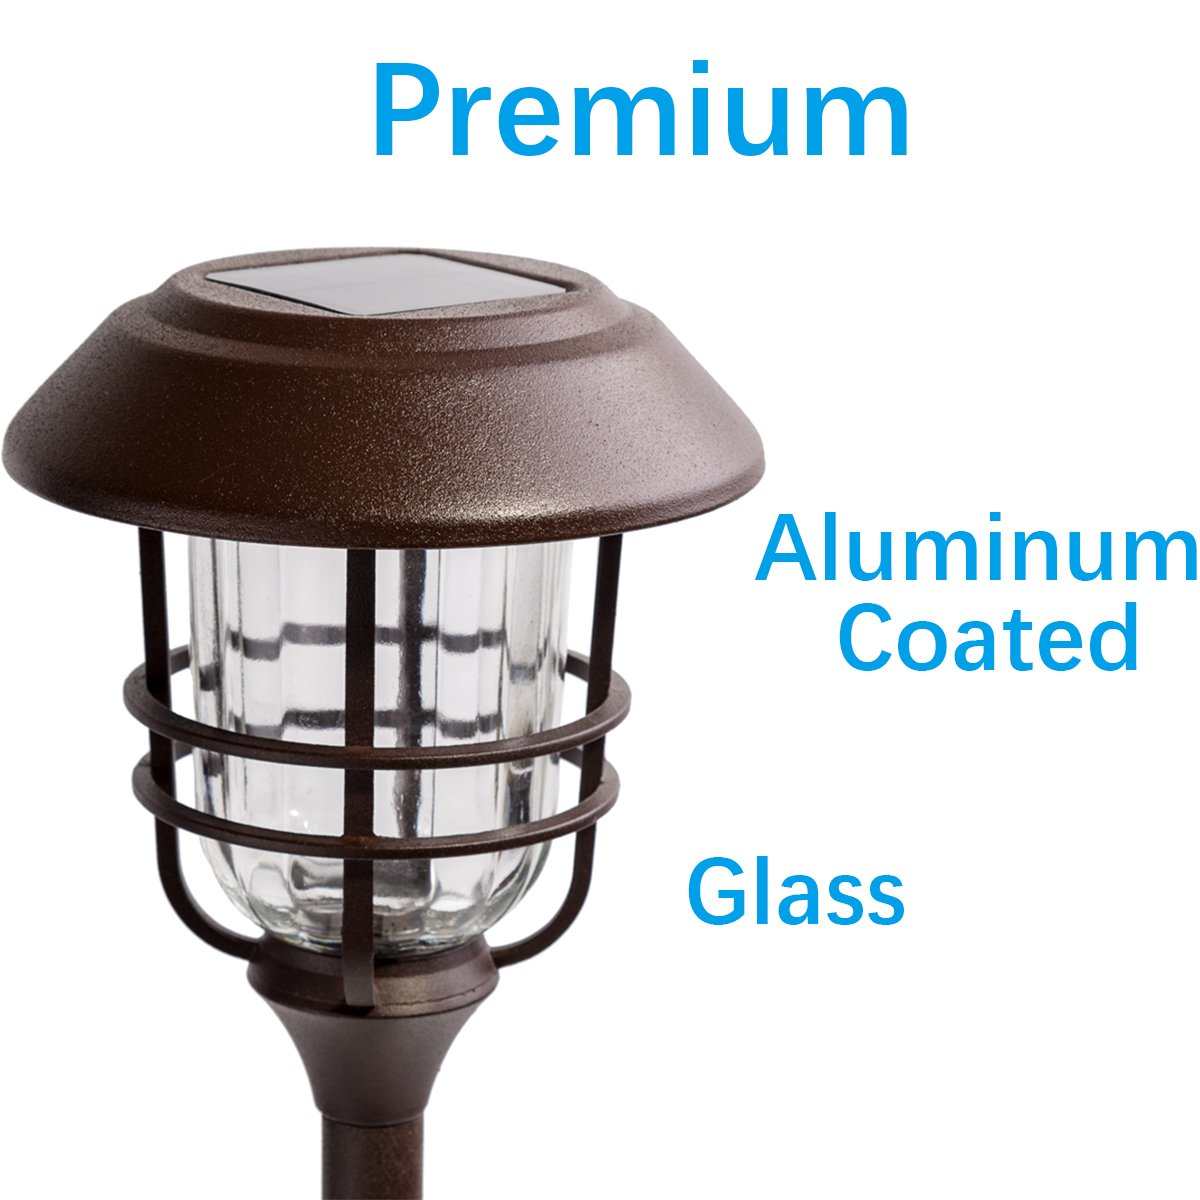 no wire lighting. No Wire Lighting. Gigalumi Outdoor Solar Lights, Glass And Powder Coated Cast Aluminum Metal Lighting G